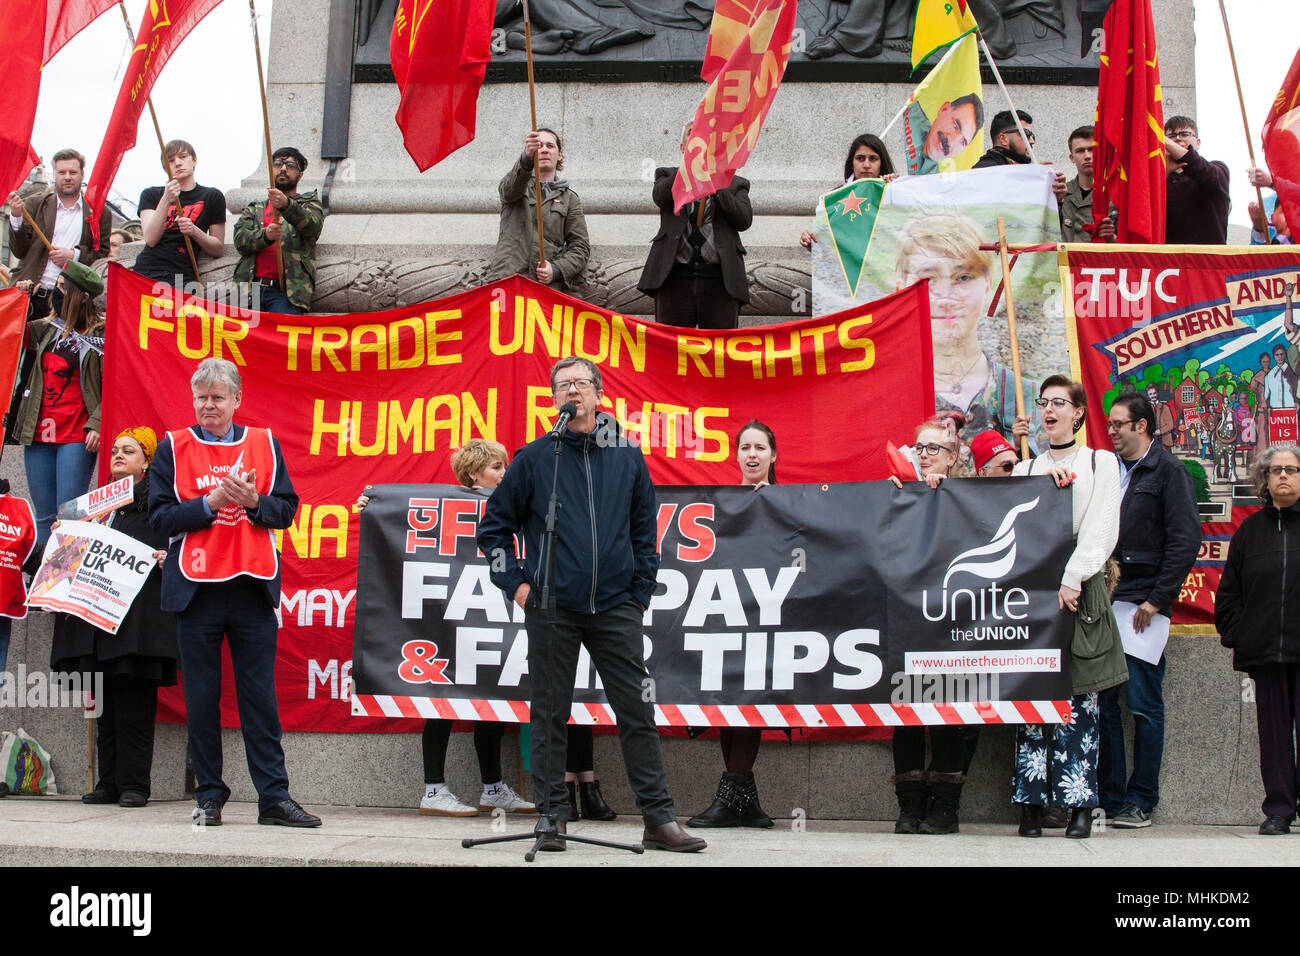 London, UK. 1st May, 2018. Peter Kavanagh of Unite addresses representatives of trade unions and socialist and communist parties from many different countries taking part in the annual May Day rally in Trafalgar Square to mark International Workers' Day. Credit: Mark Kerrison/Alamy Live News - Stock Image